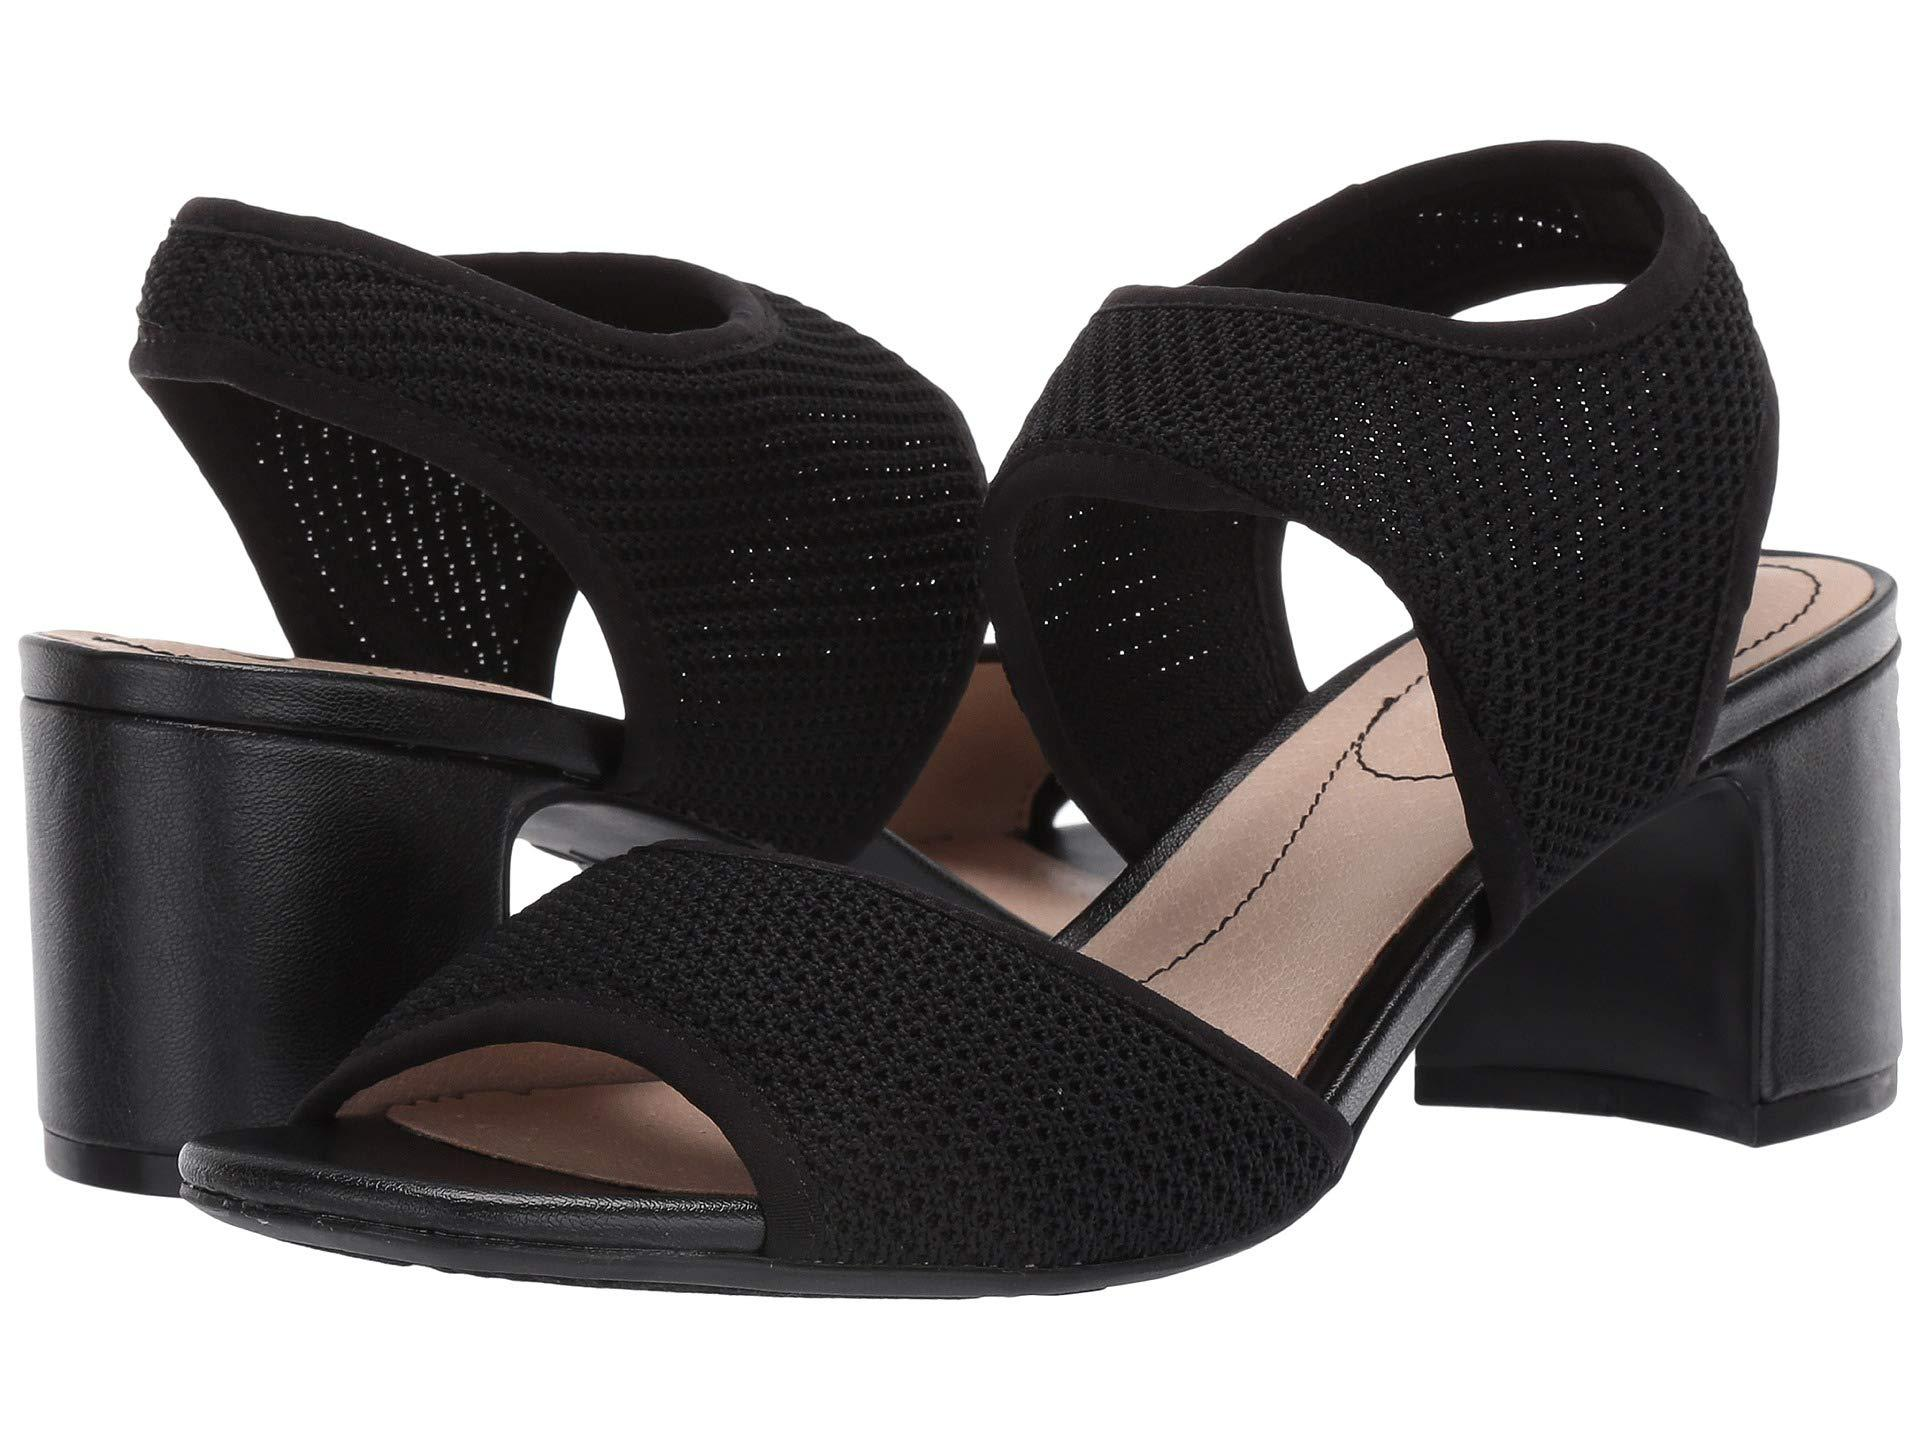 c6e3fdee1c9b LifeStride - Courtney (black Knitweave) Women s Shoes - Lyst. View  fullscreen